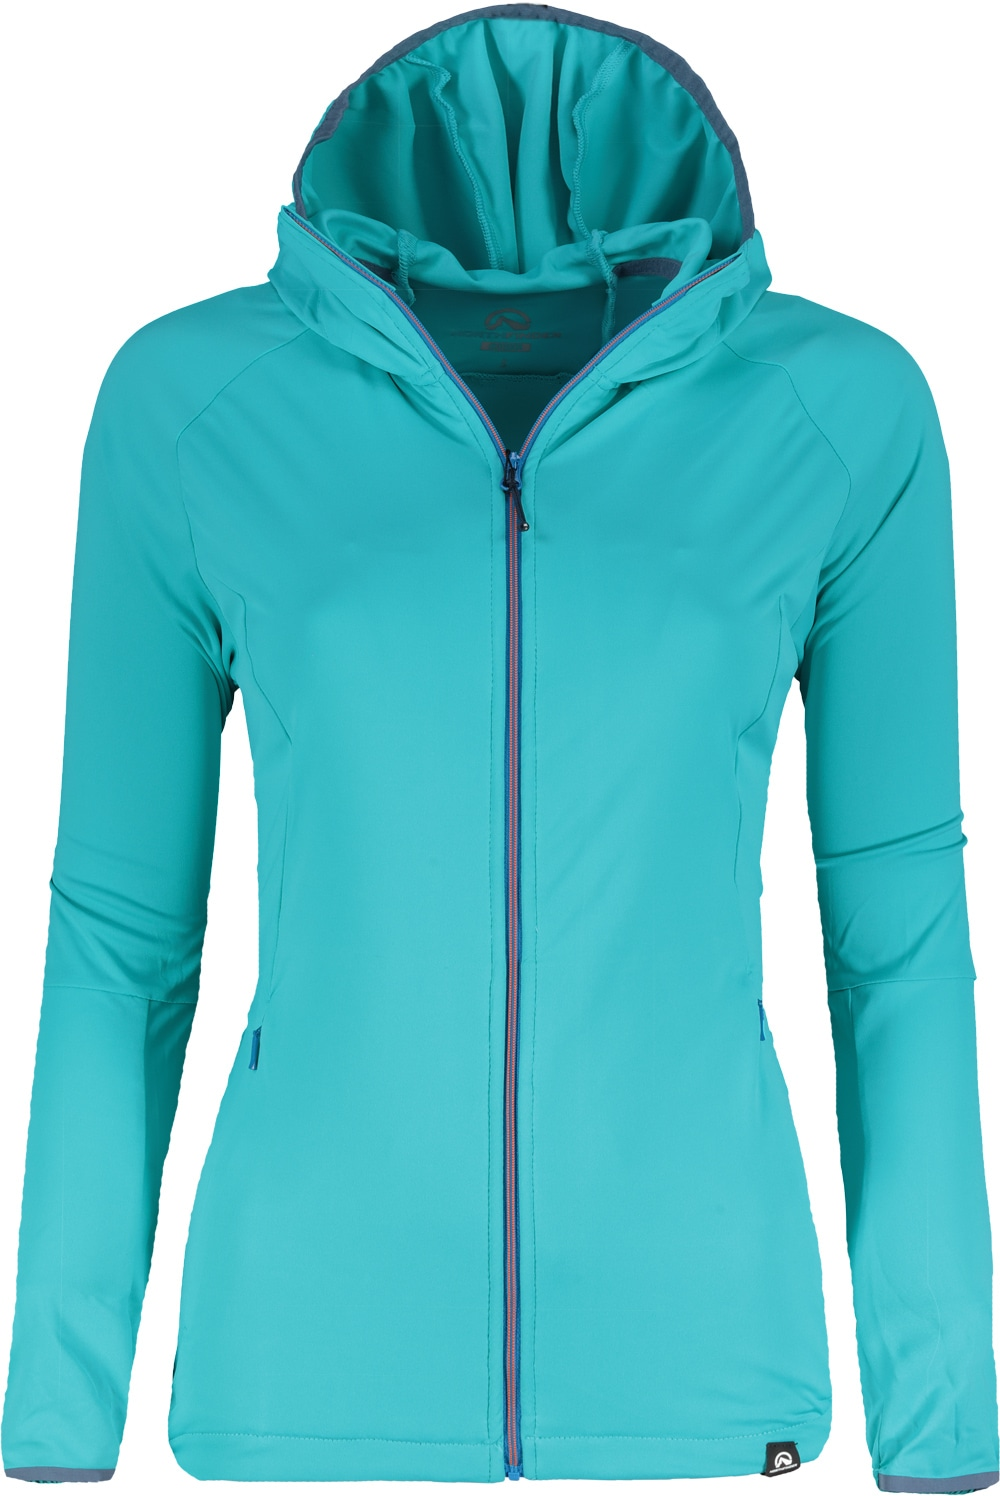 Women's outdoor sweatshirt NORTHFINDER KAELYNN